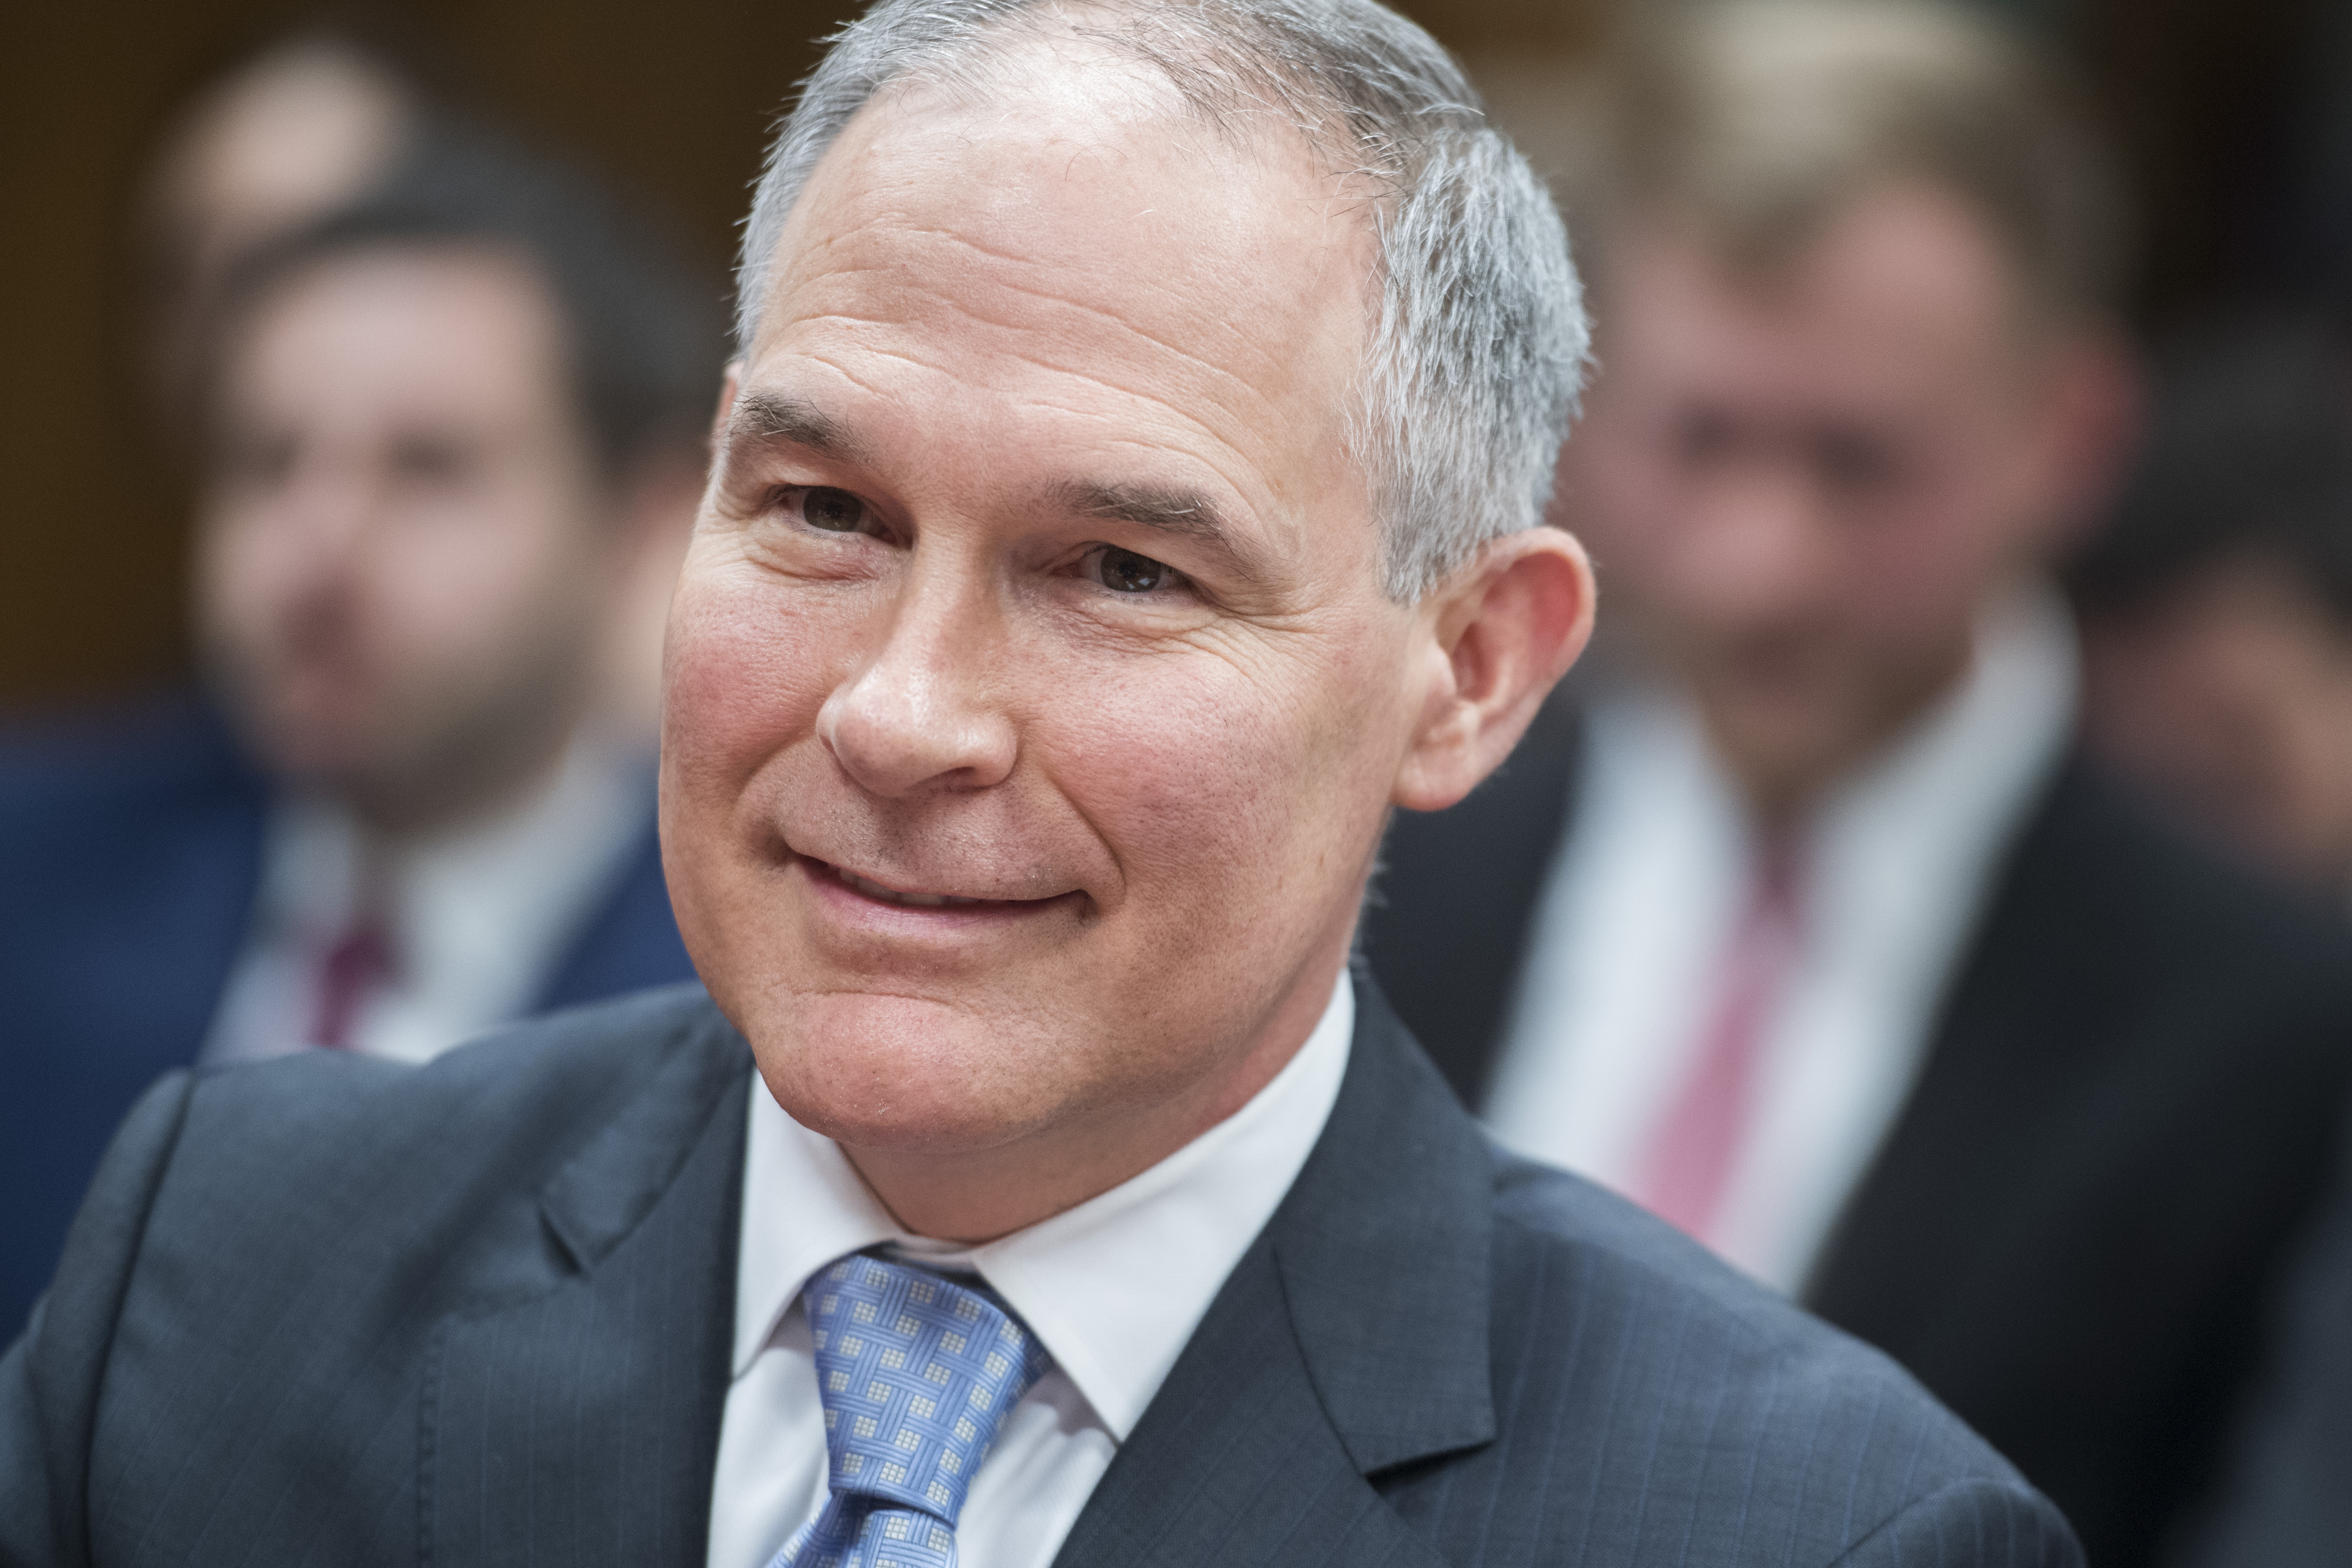 Former Environmental Protection Agency Administrator Scott Pruitt on May 16, 2018. Pruitt reversed an Obama-era effort to ban chlorpyrifos,